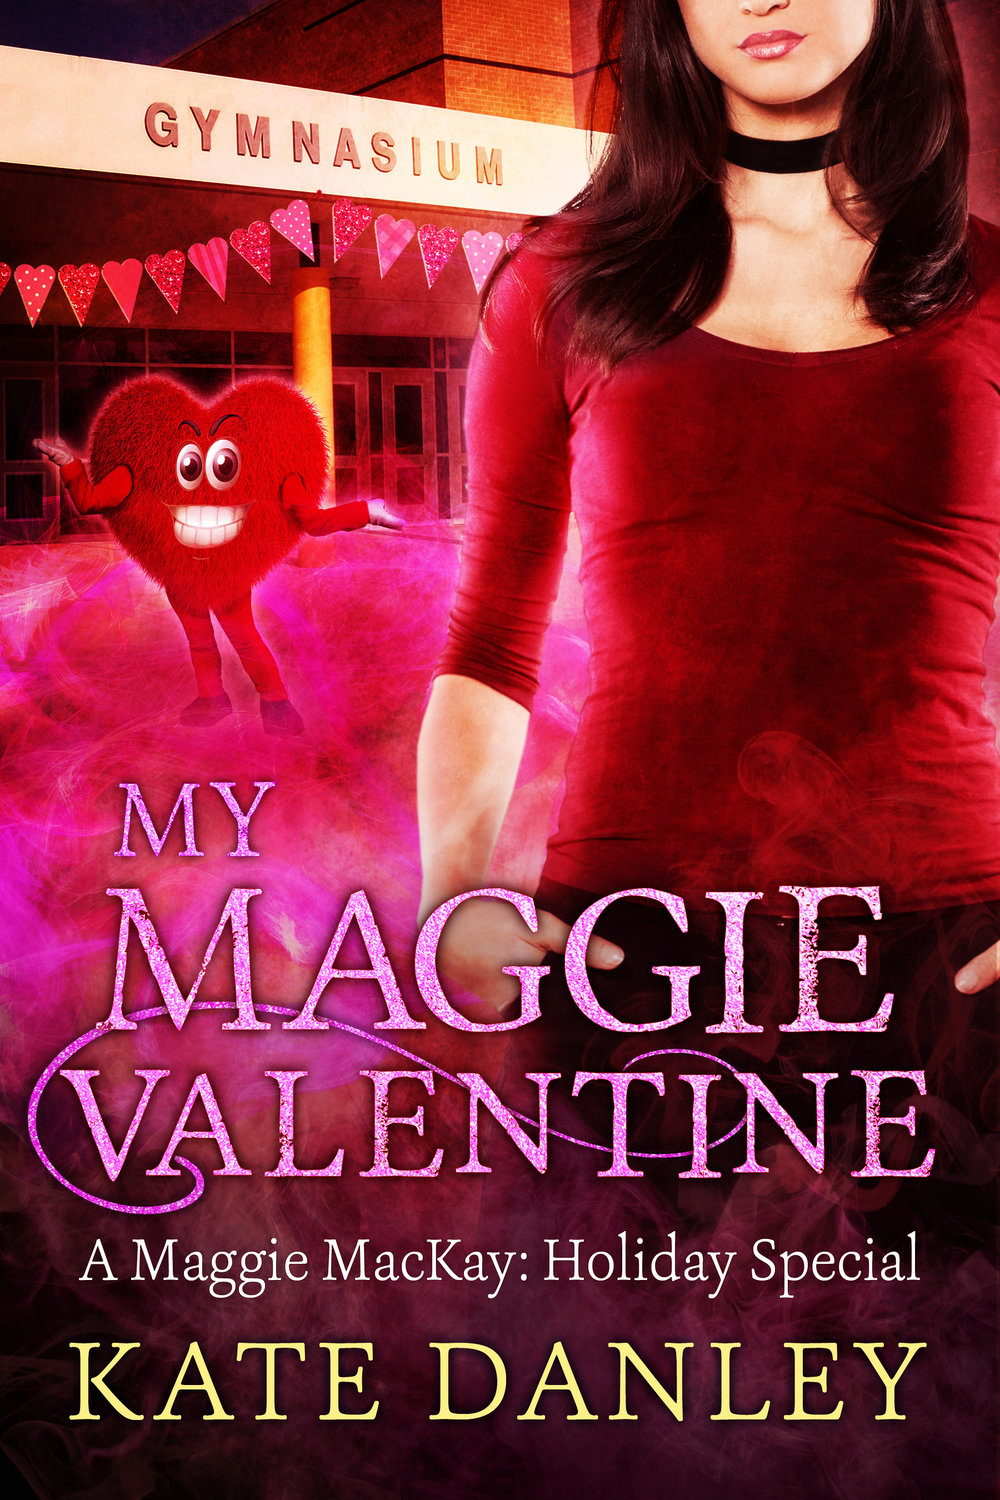 My-Maggie-Valentine_ebook.jpg